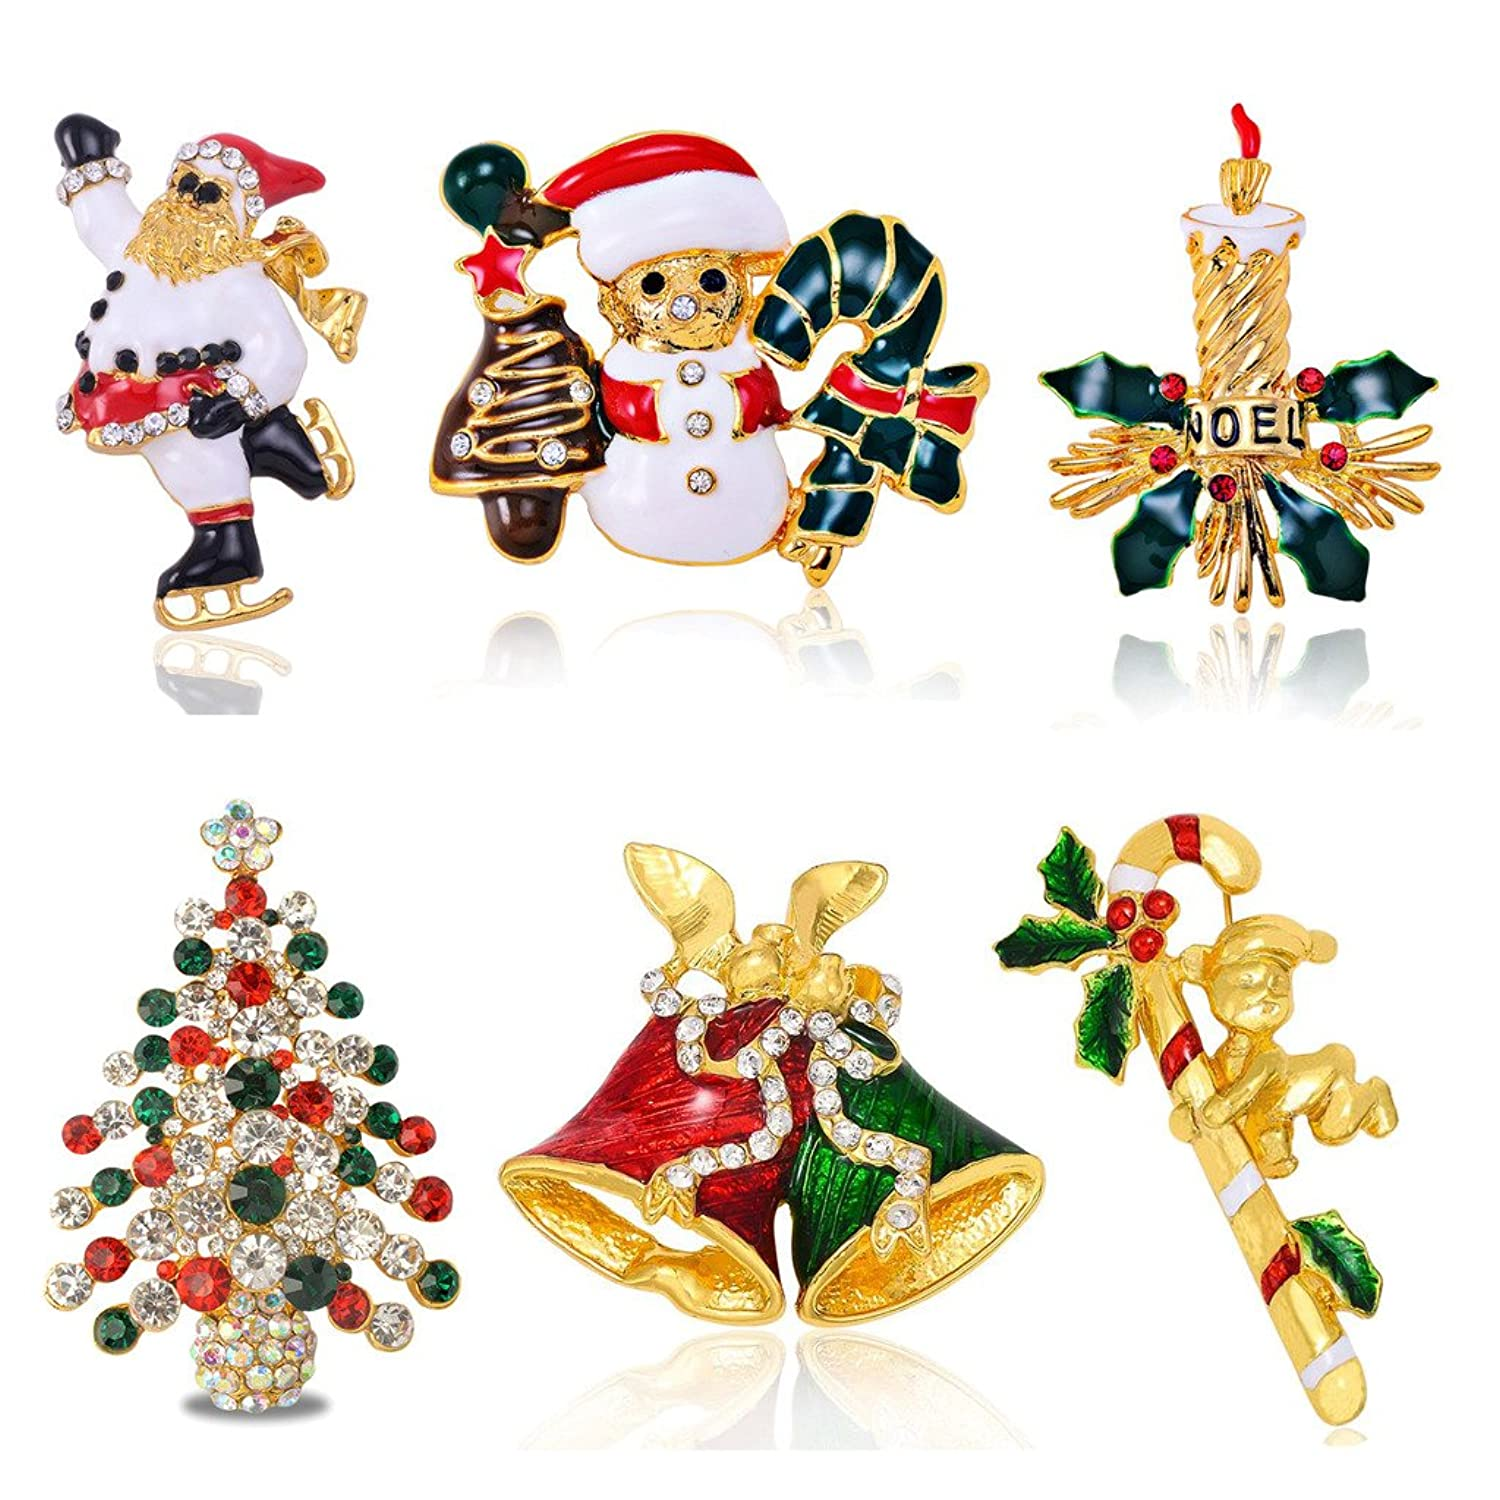 Sewanz Women's Christmas Theme Brooch Pins,Happy Holidays Decorations Gift